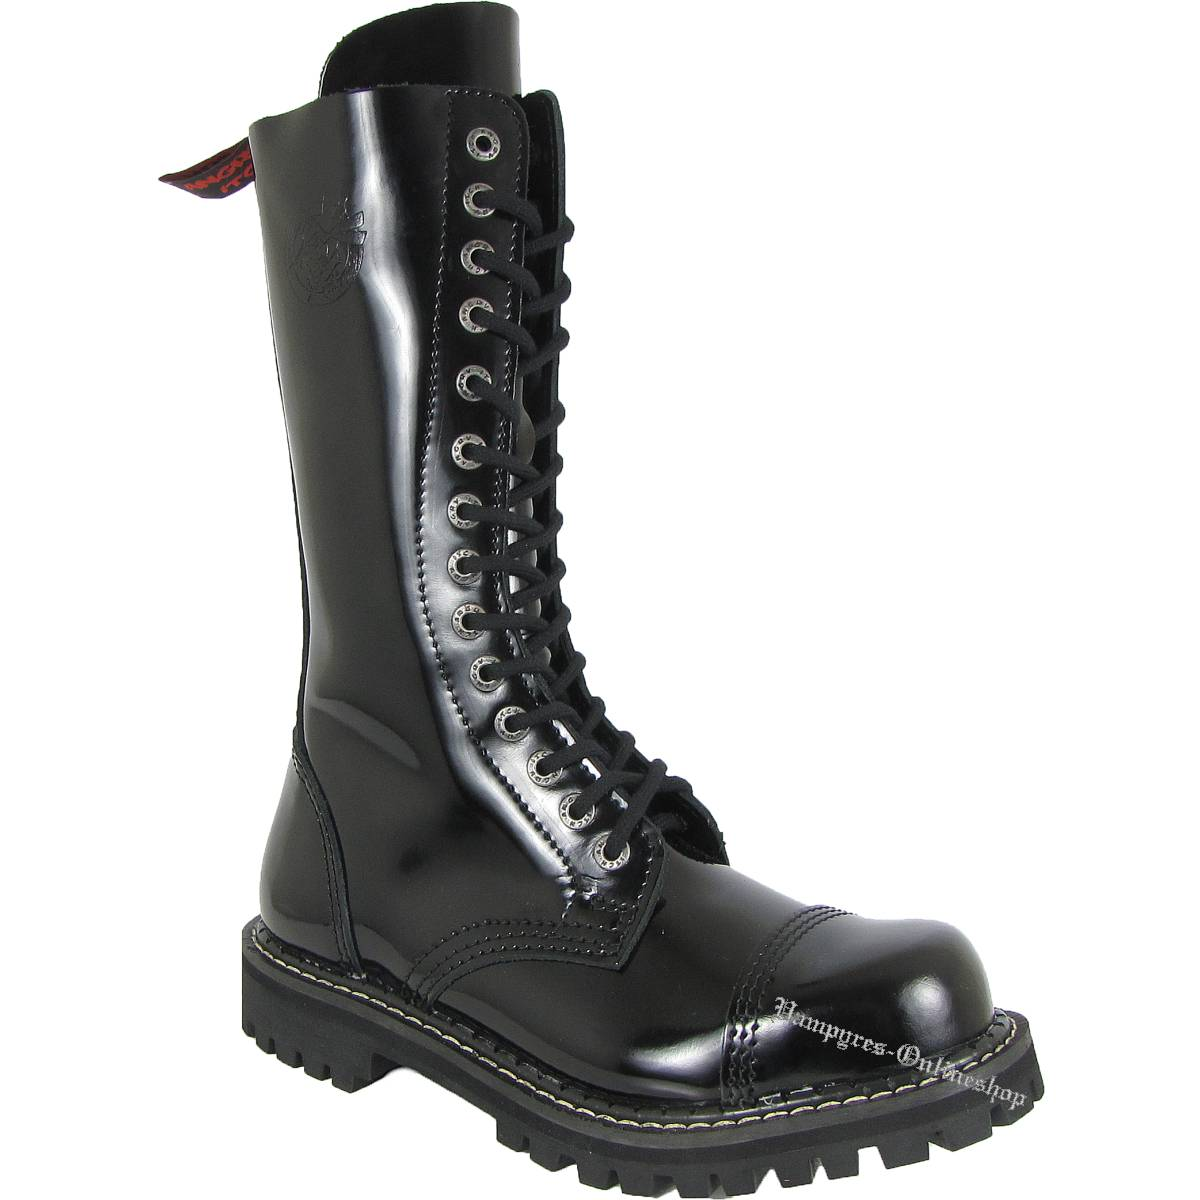 Angry Itch 14-Loch Lack Zip Schwarz Patent Rangers Stiefel RV